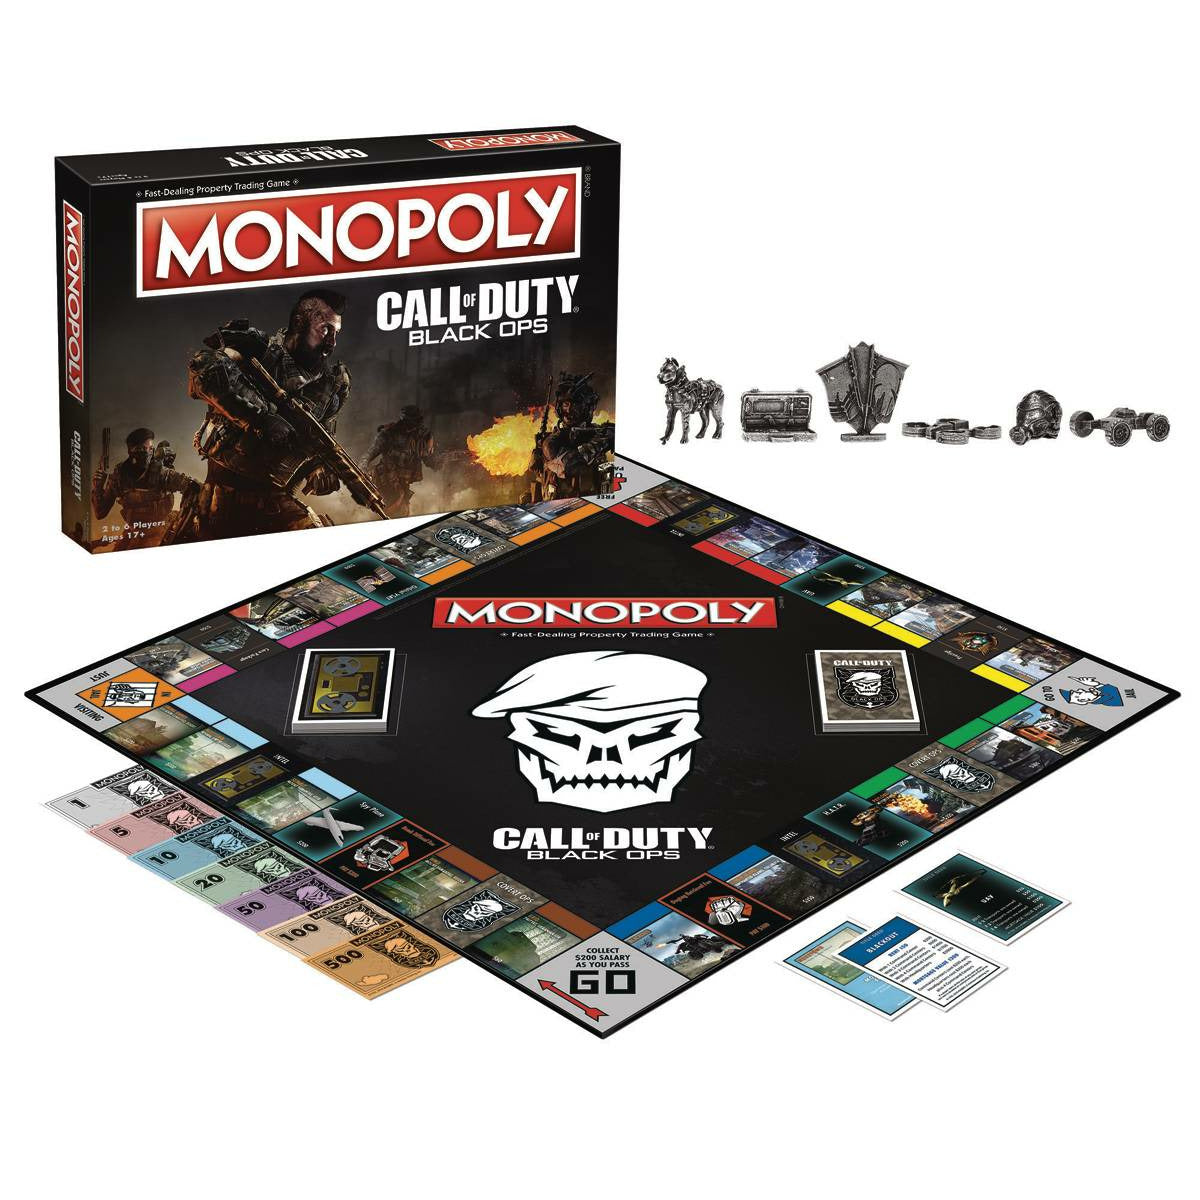 Call of Duty: Black Ops Edition Monopoly Board Game